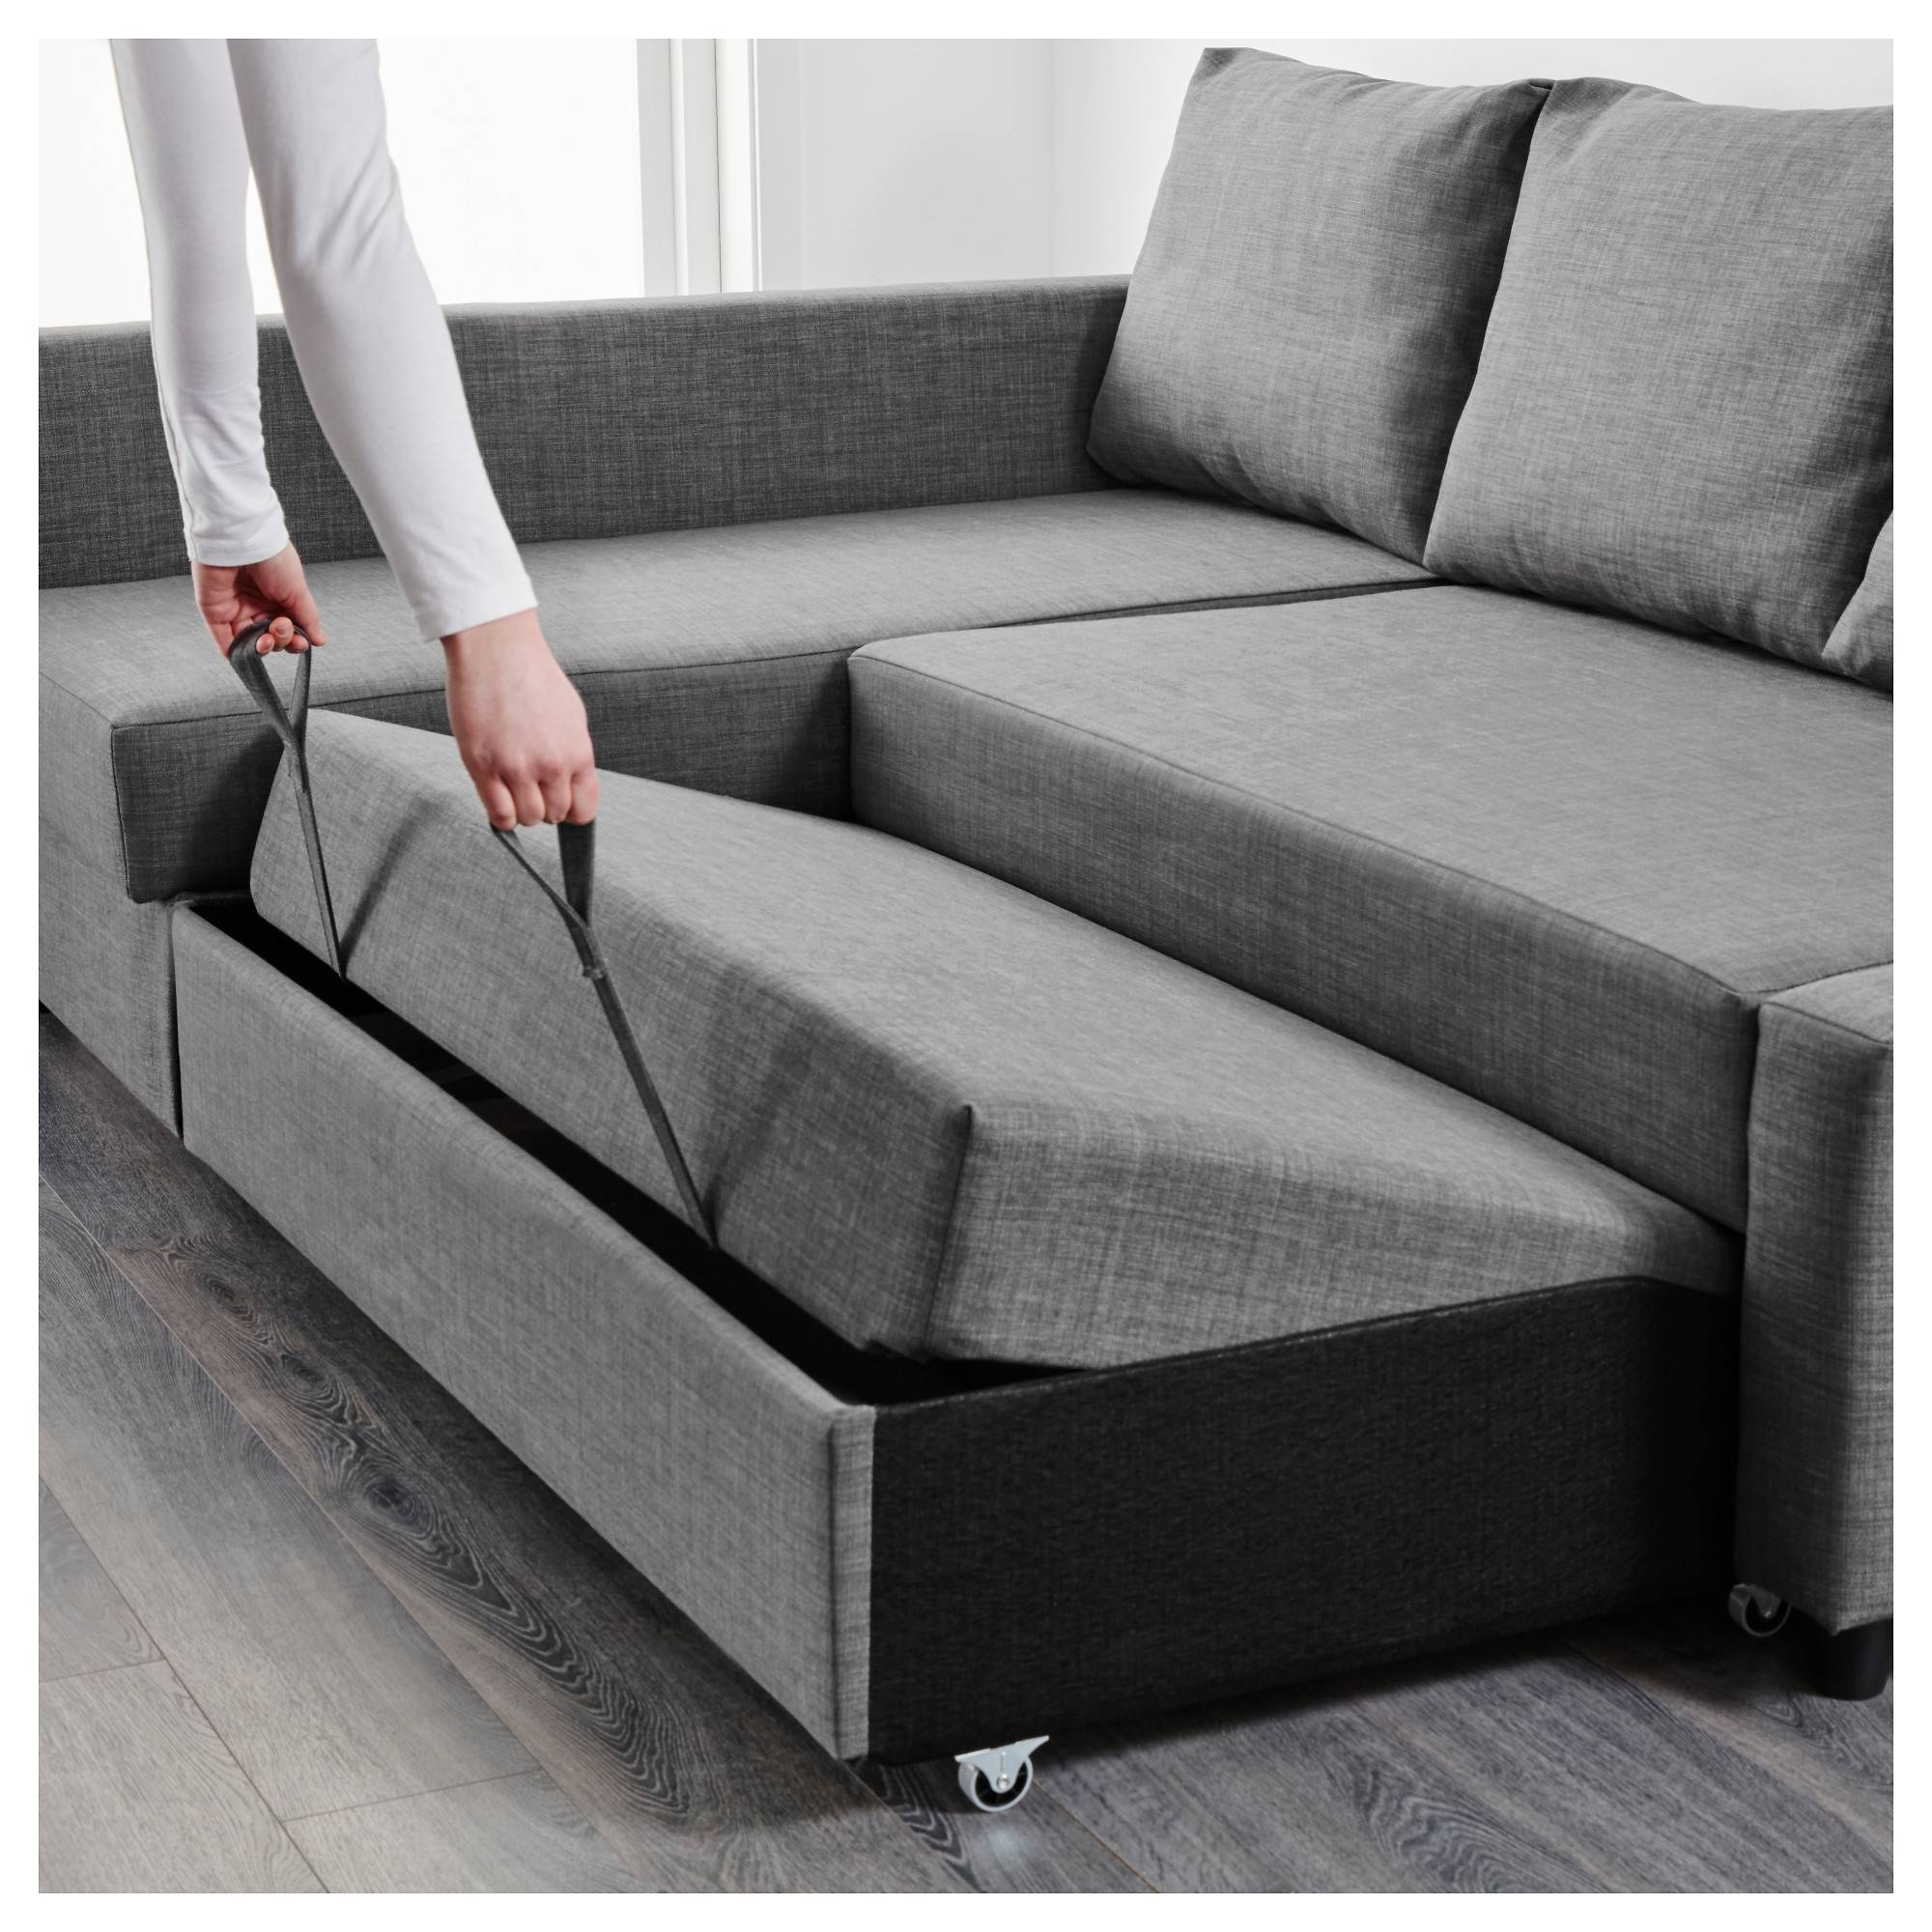 Friheten Corner Sofa-Bed With Storage Skiftebo Dark Grey - Ikea with Ikea Chaise Lounge Sofa (Image 12 of 30)